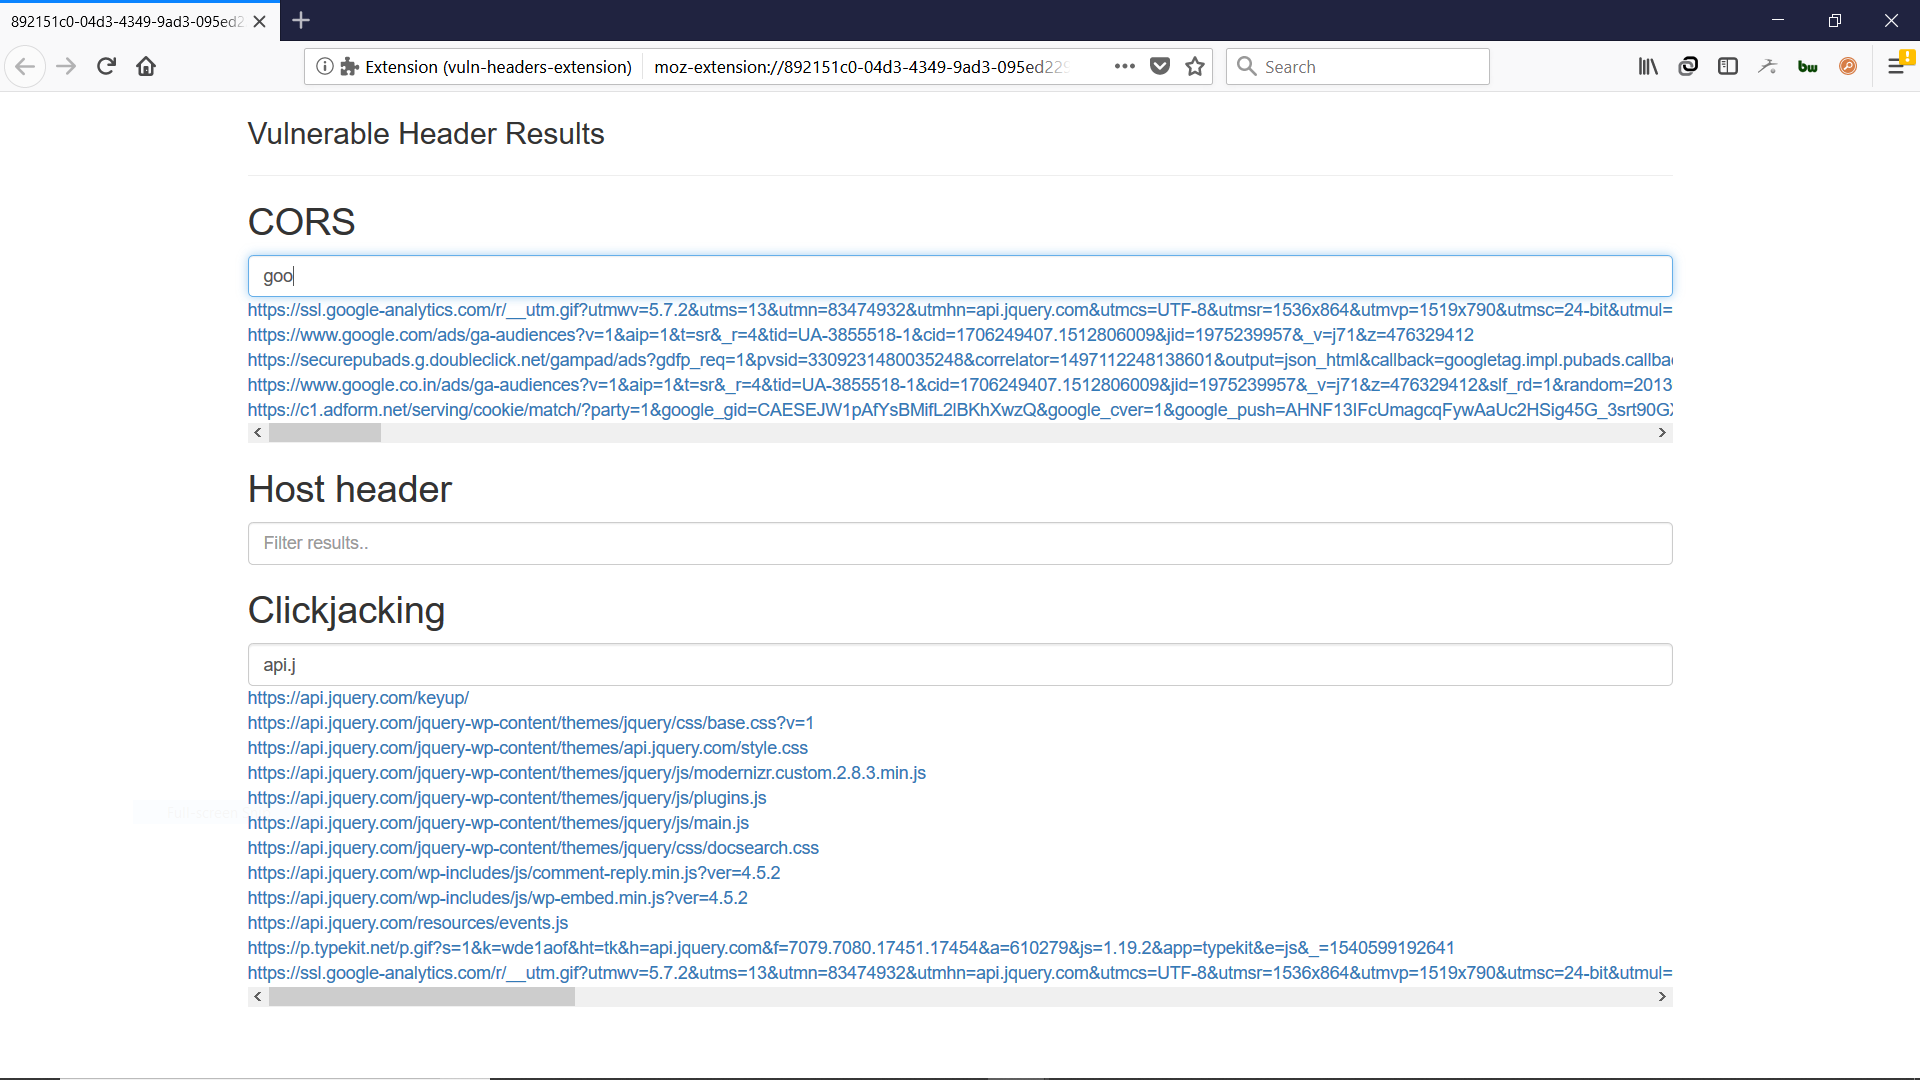 https://raw.githubusercontent.com/rewanth1997/vuln-headers-extension/master/GUI.PNG